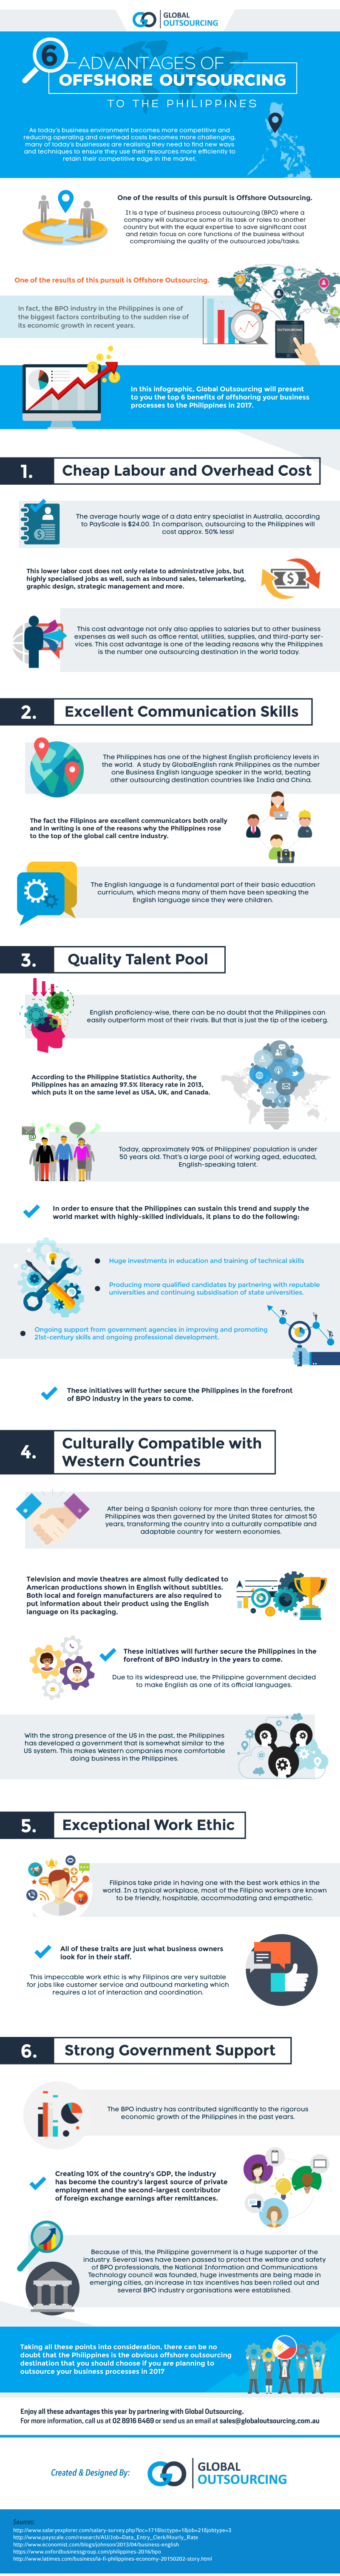 6-Advantages-of-Offshore-Outsourcing-to-the-Philippines_Offshore outsourcing and the Philippines? Check out this excellent infographic by Global Outsourcing for Comms Axis for why they're a match made in heaven!